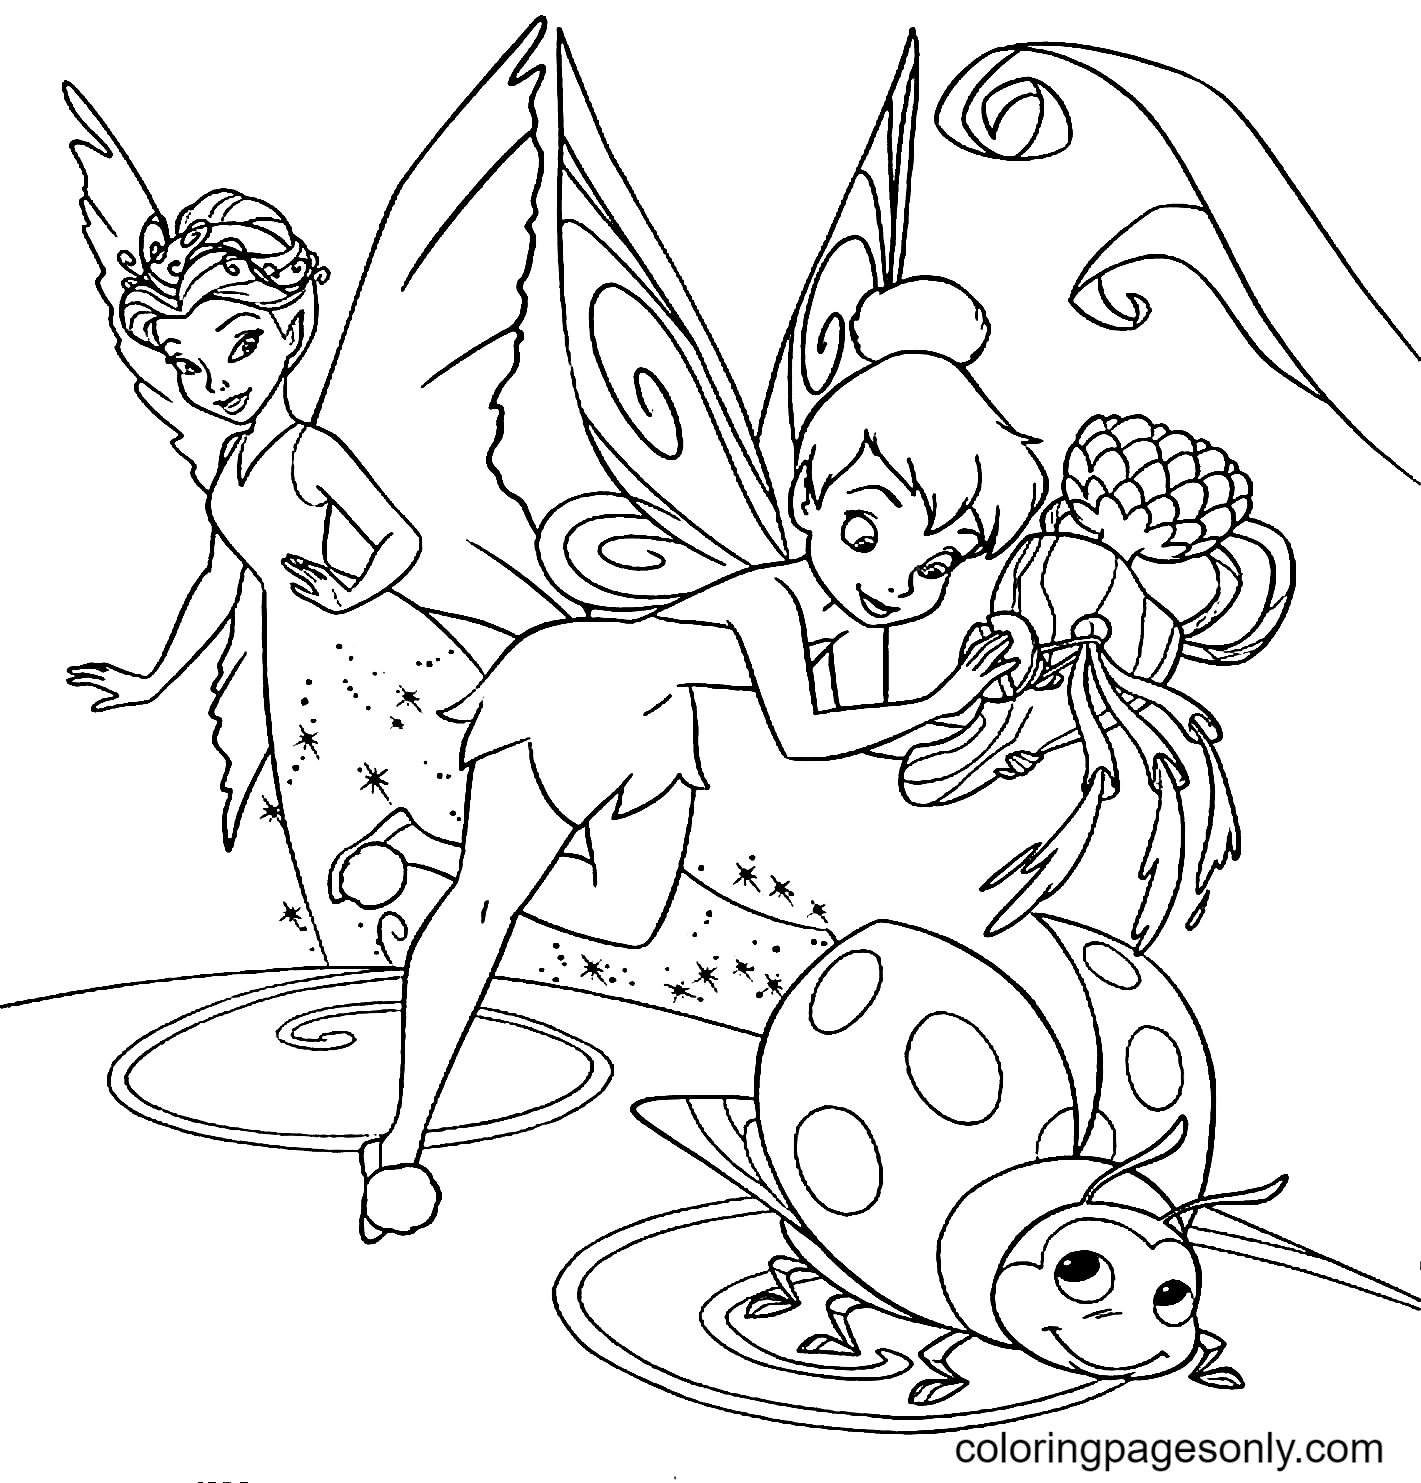 Tinker Bell And Ladybug Coloring Page